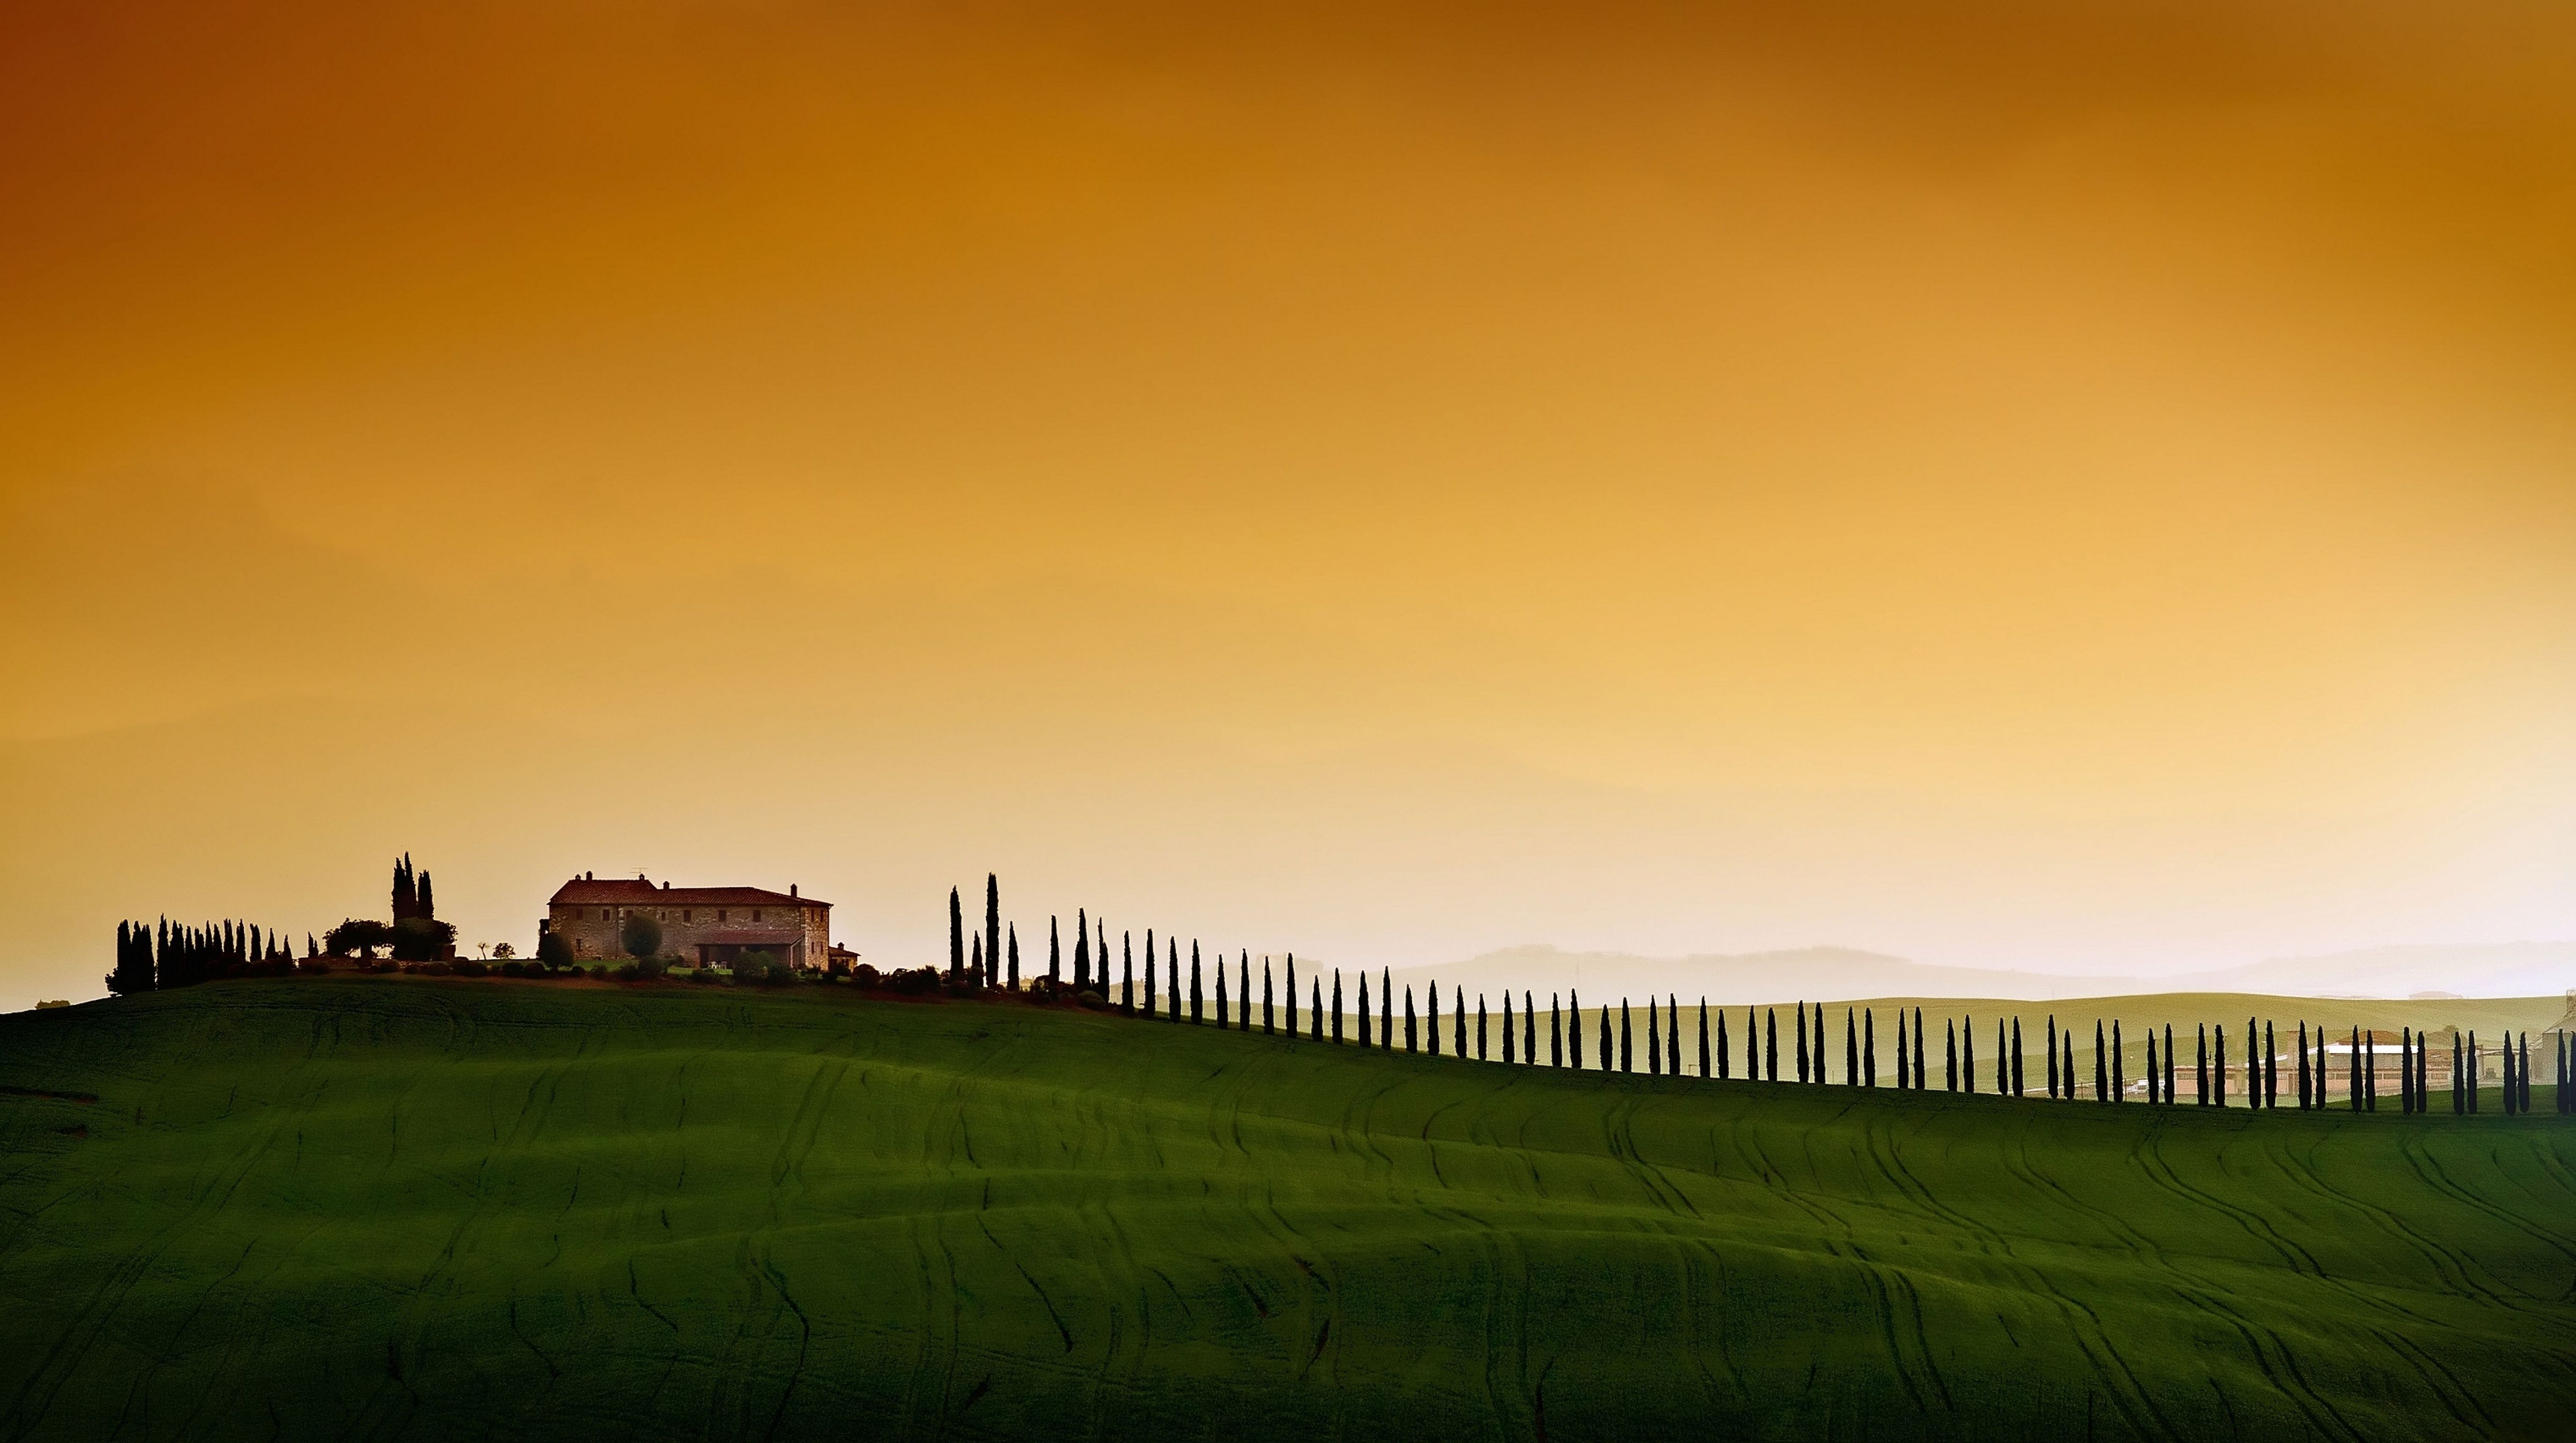 tuscany wallpapers images photos pictures backgrounds